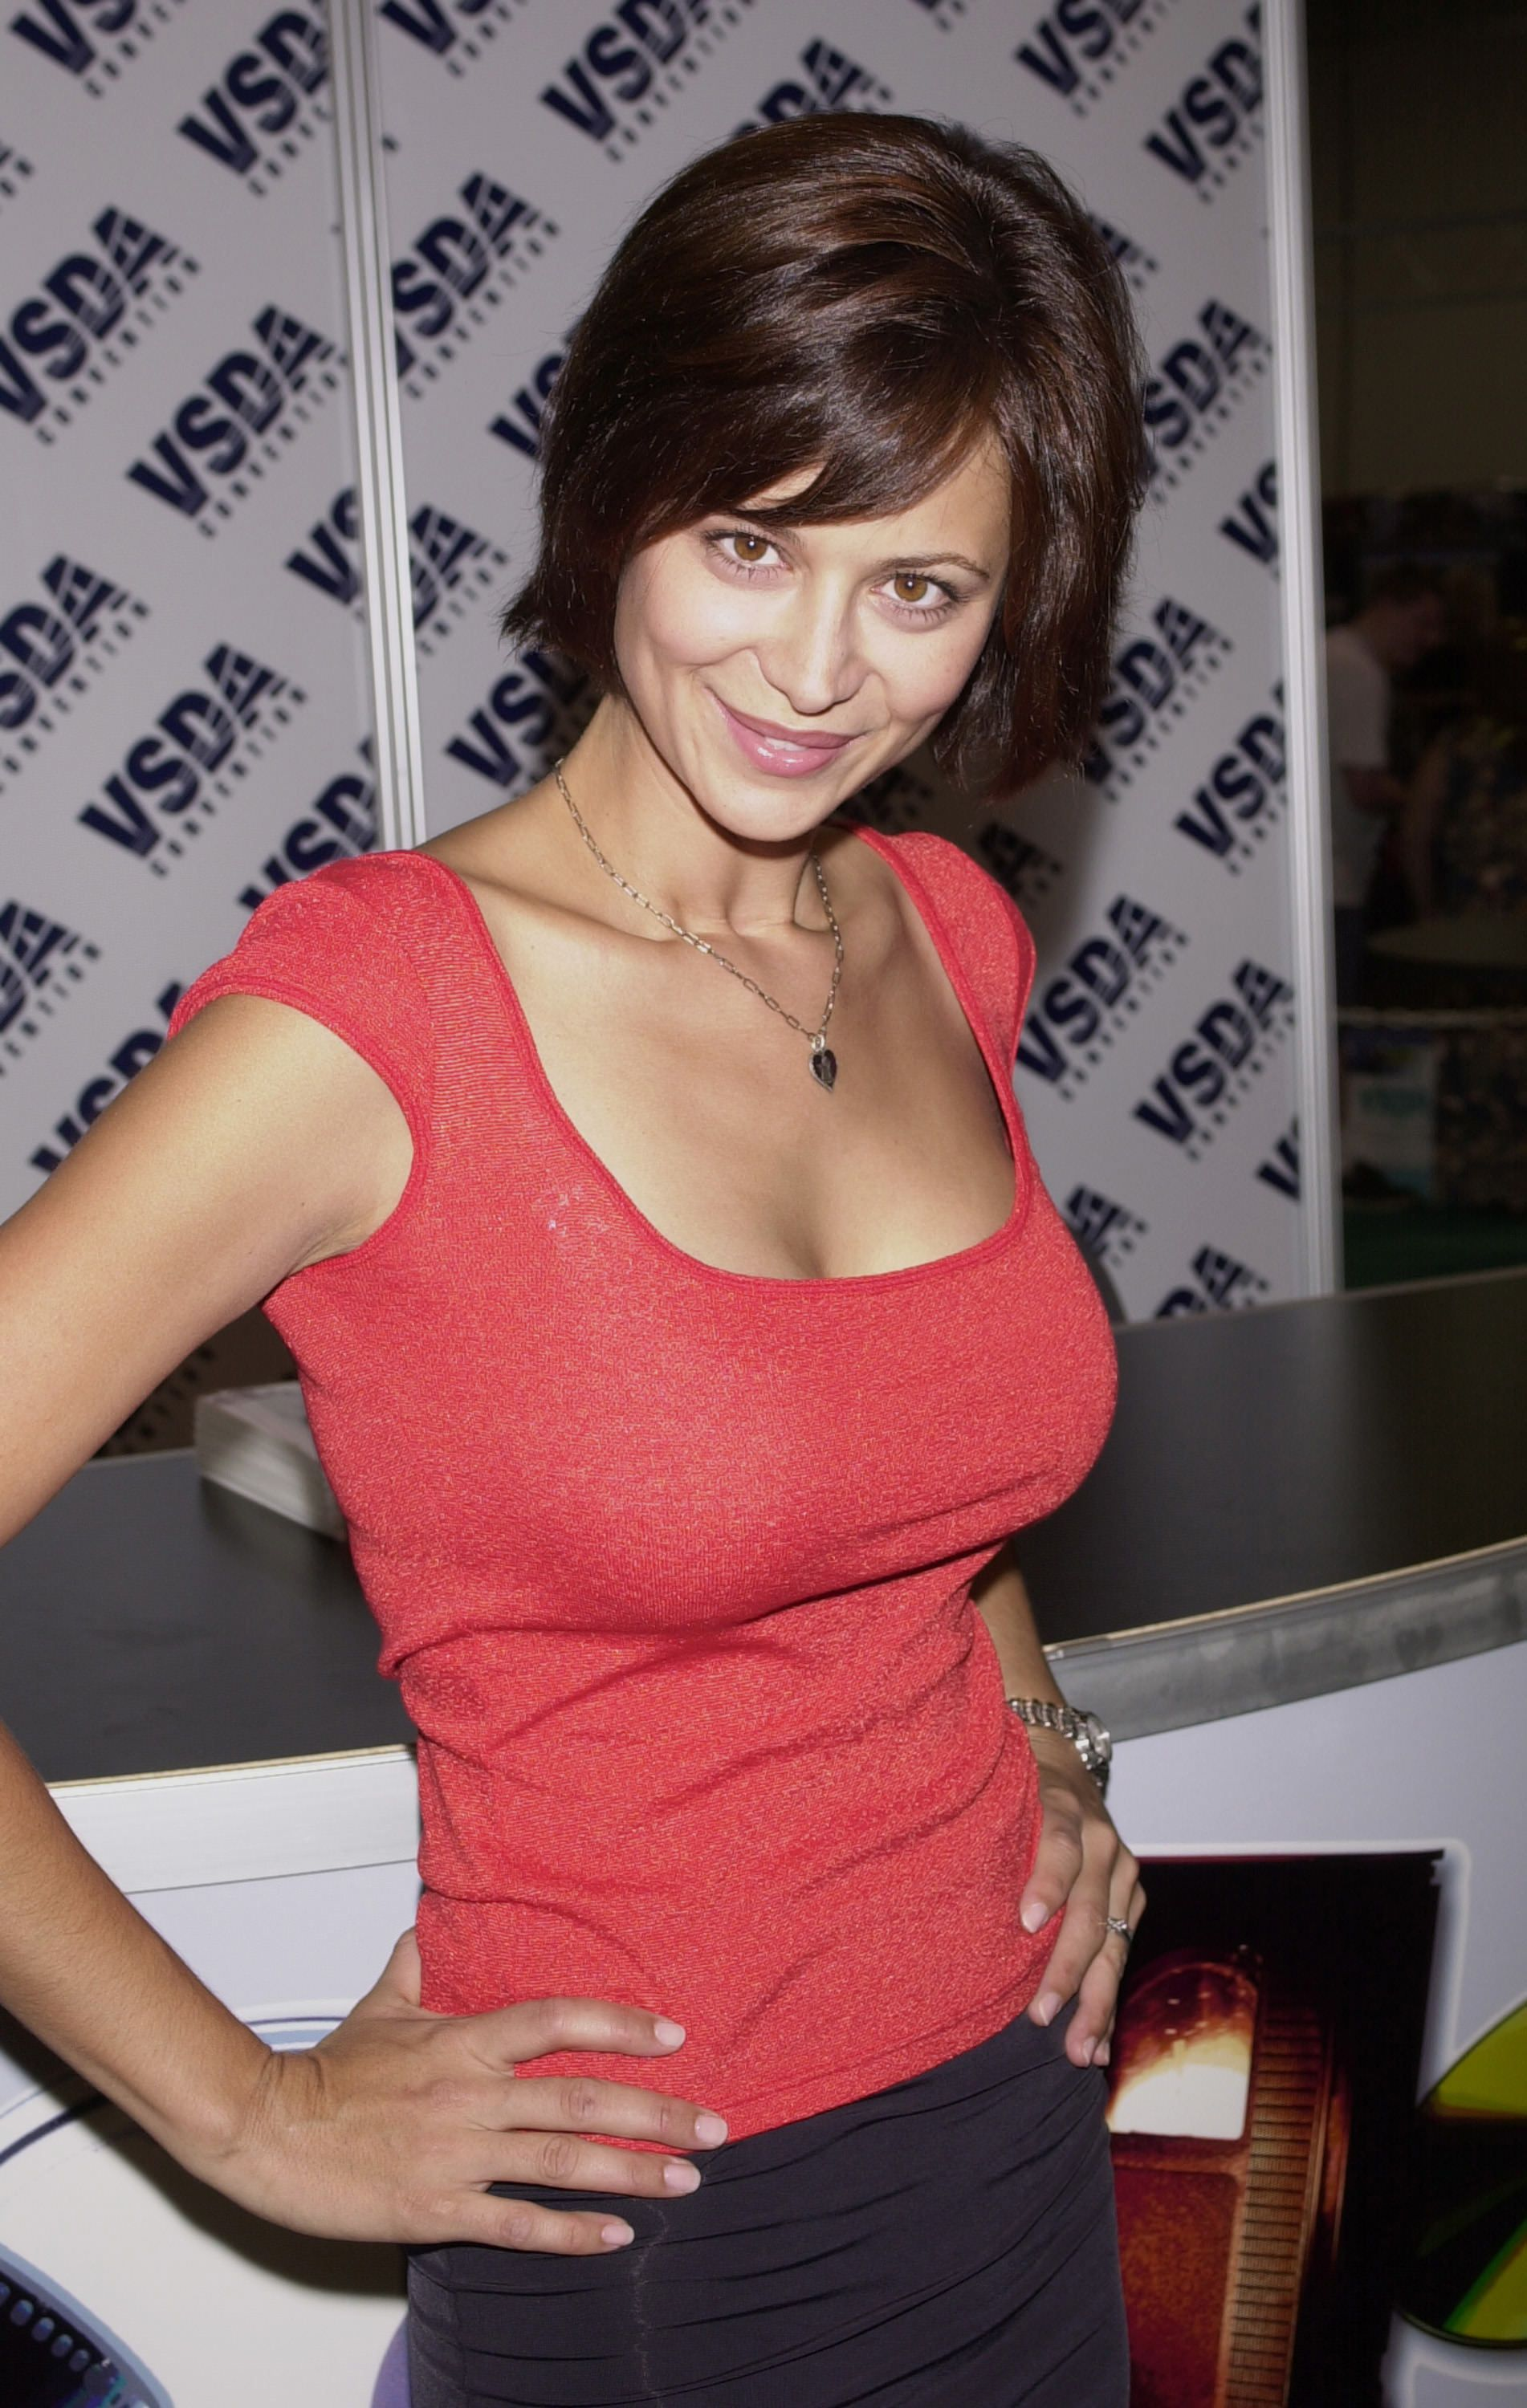 Sexy photos of catherine bell